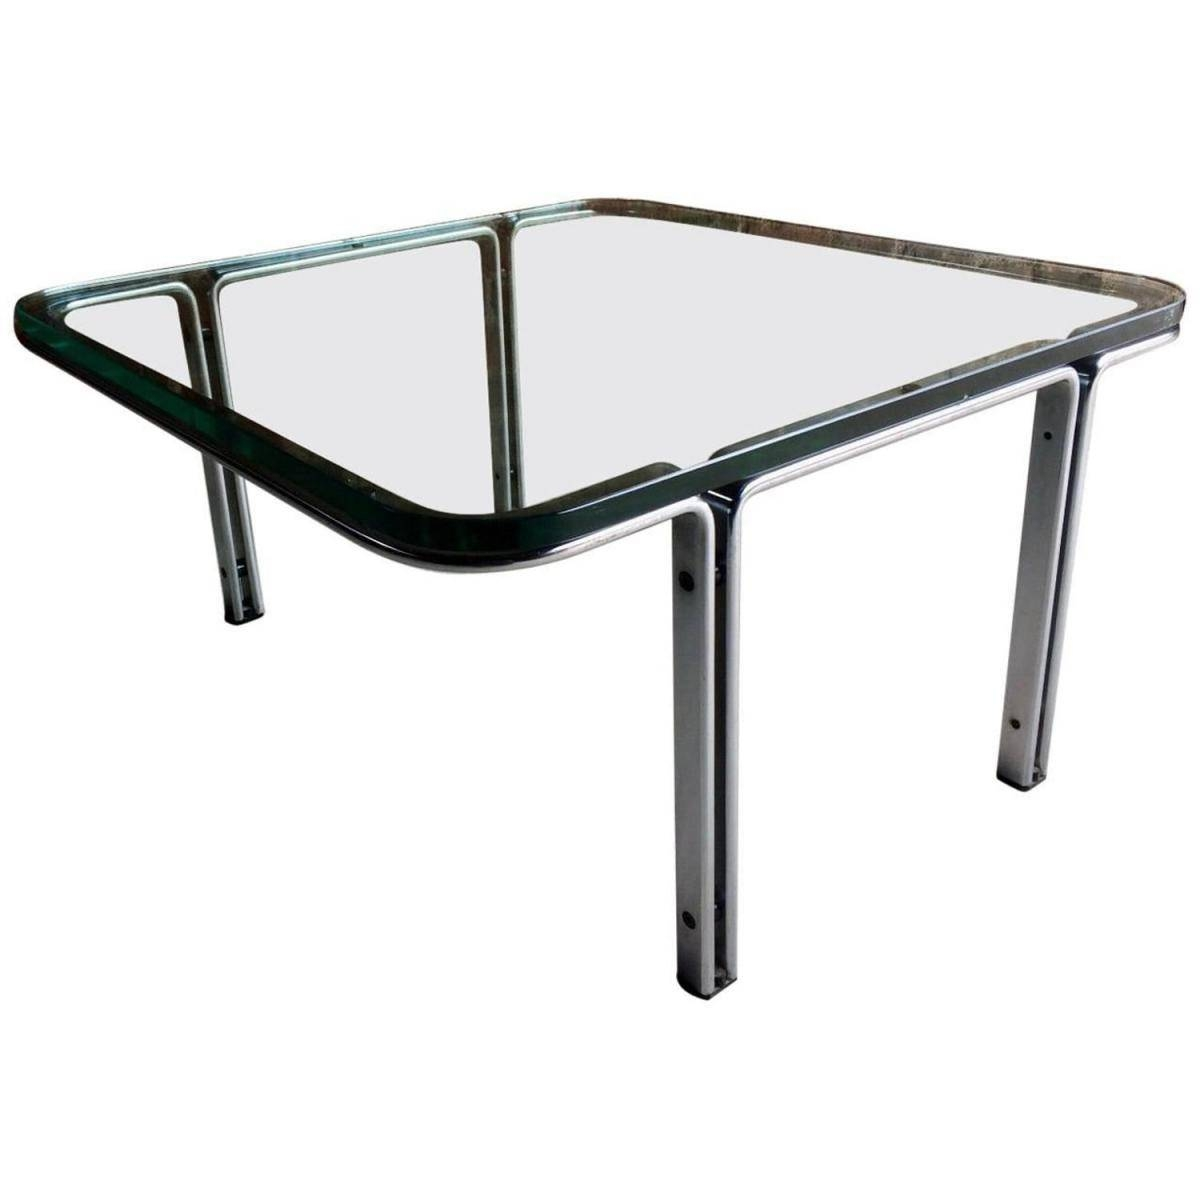 Model T111 Square Steel & Glass Coffee Tablehorst Brüning For intended for Steel And Glass Coffee Tables (Image 19 of 30)